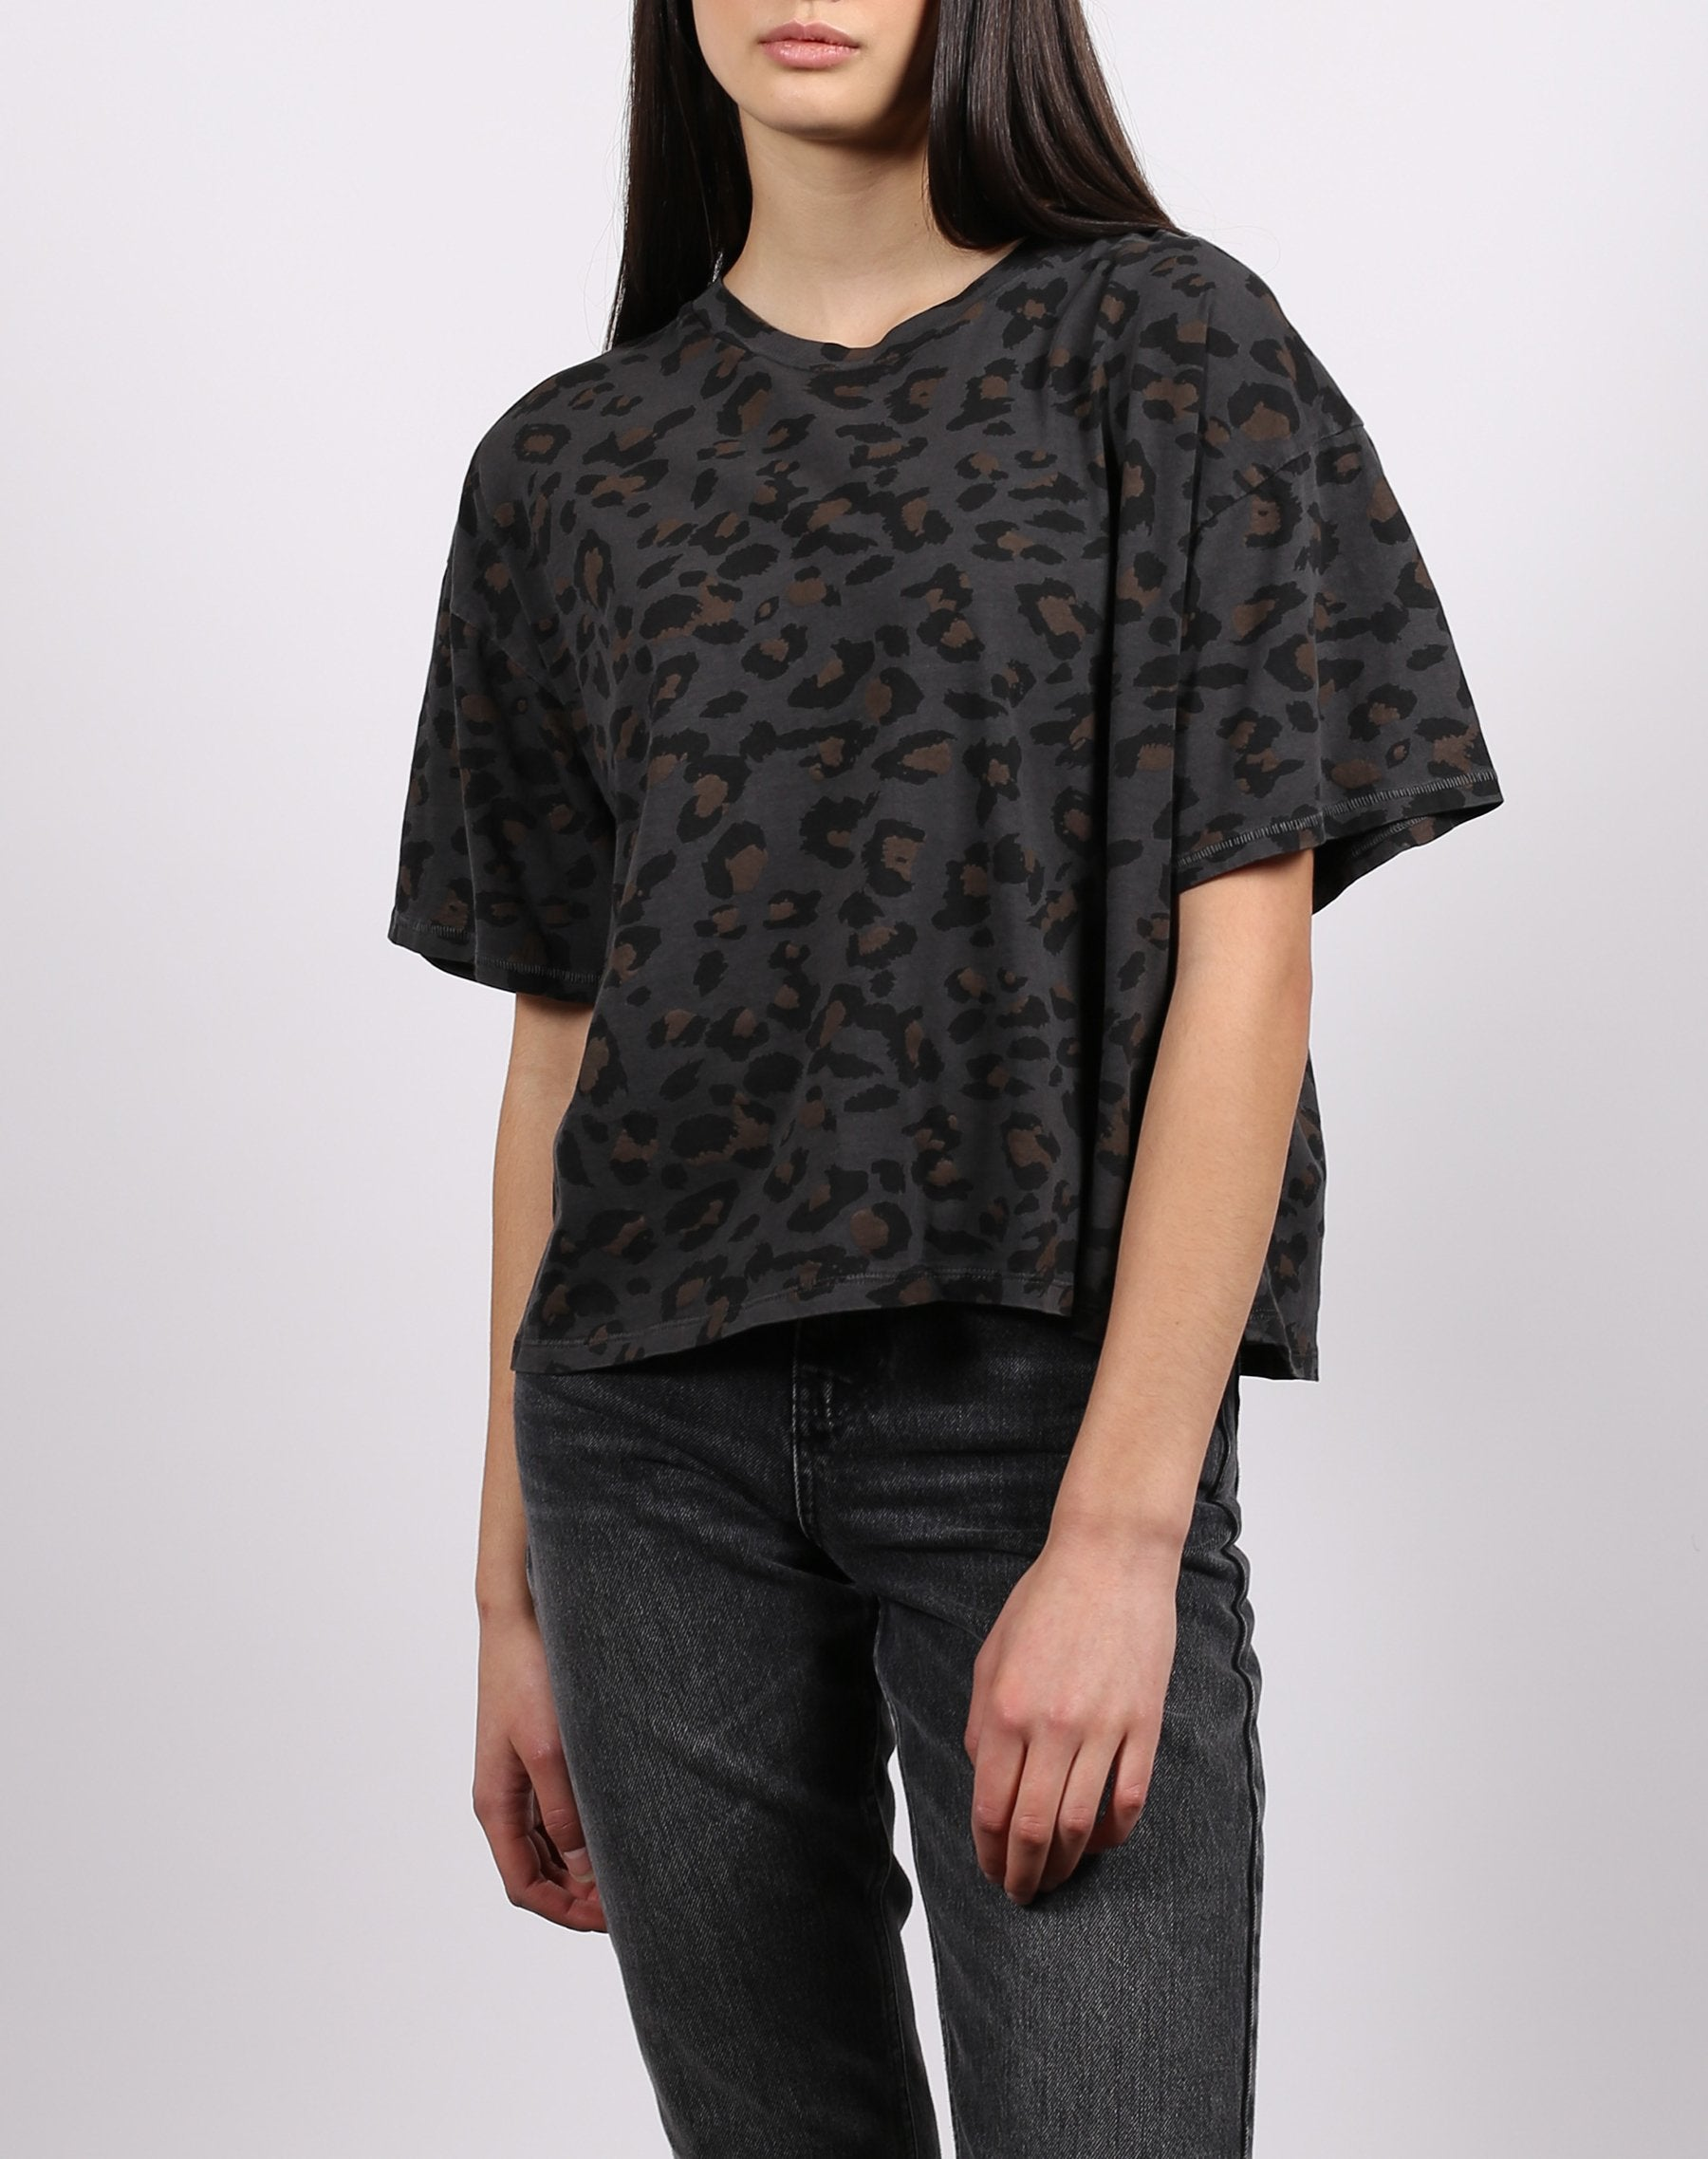 This is a photo of the front of the leopard 1981 slate grey boxy tee from brunette the label